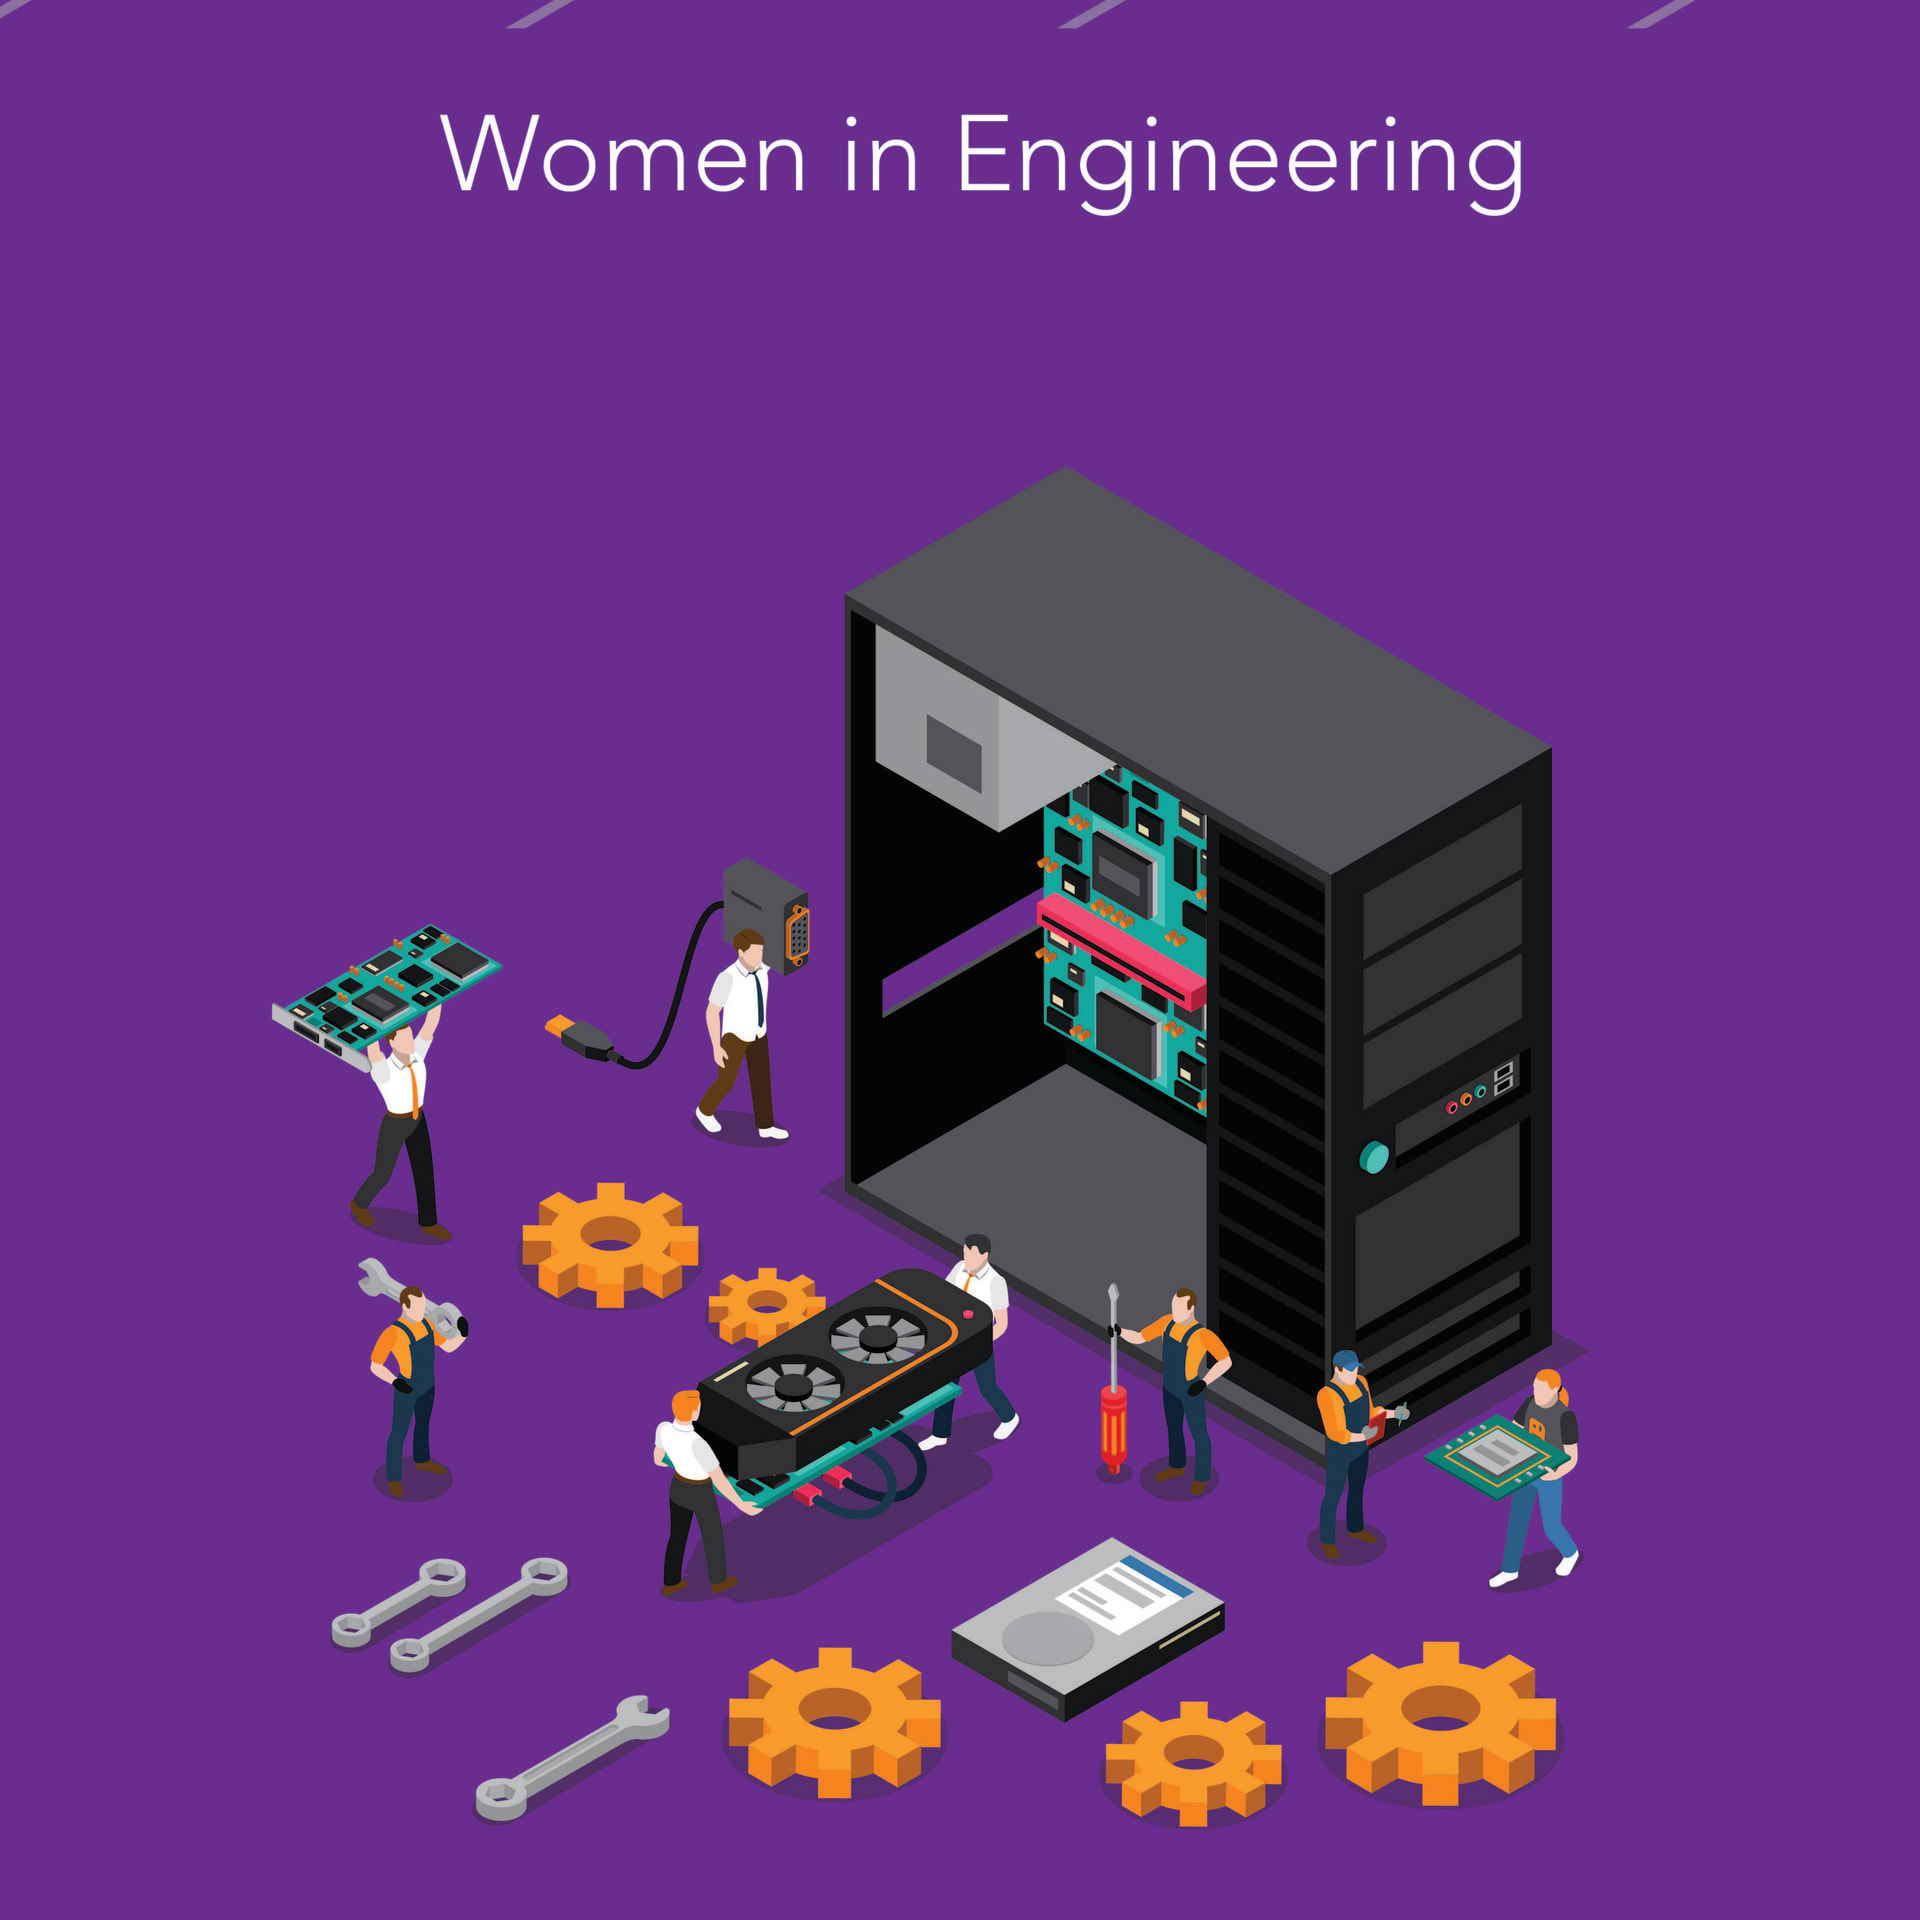 women in engineering 08